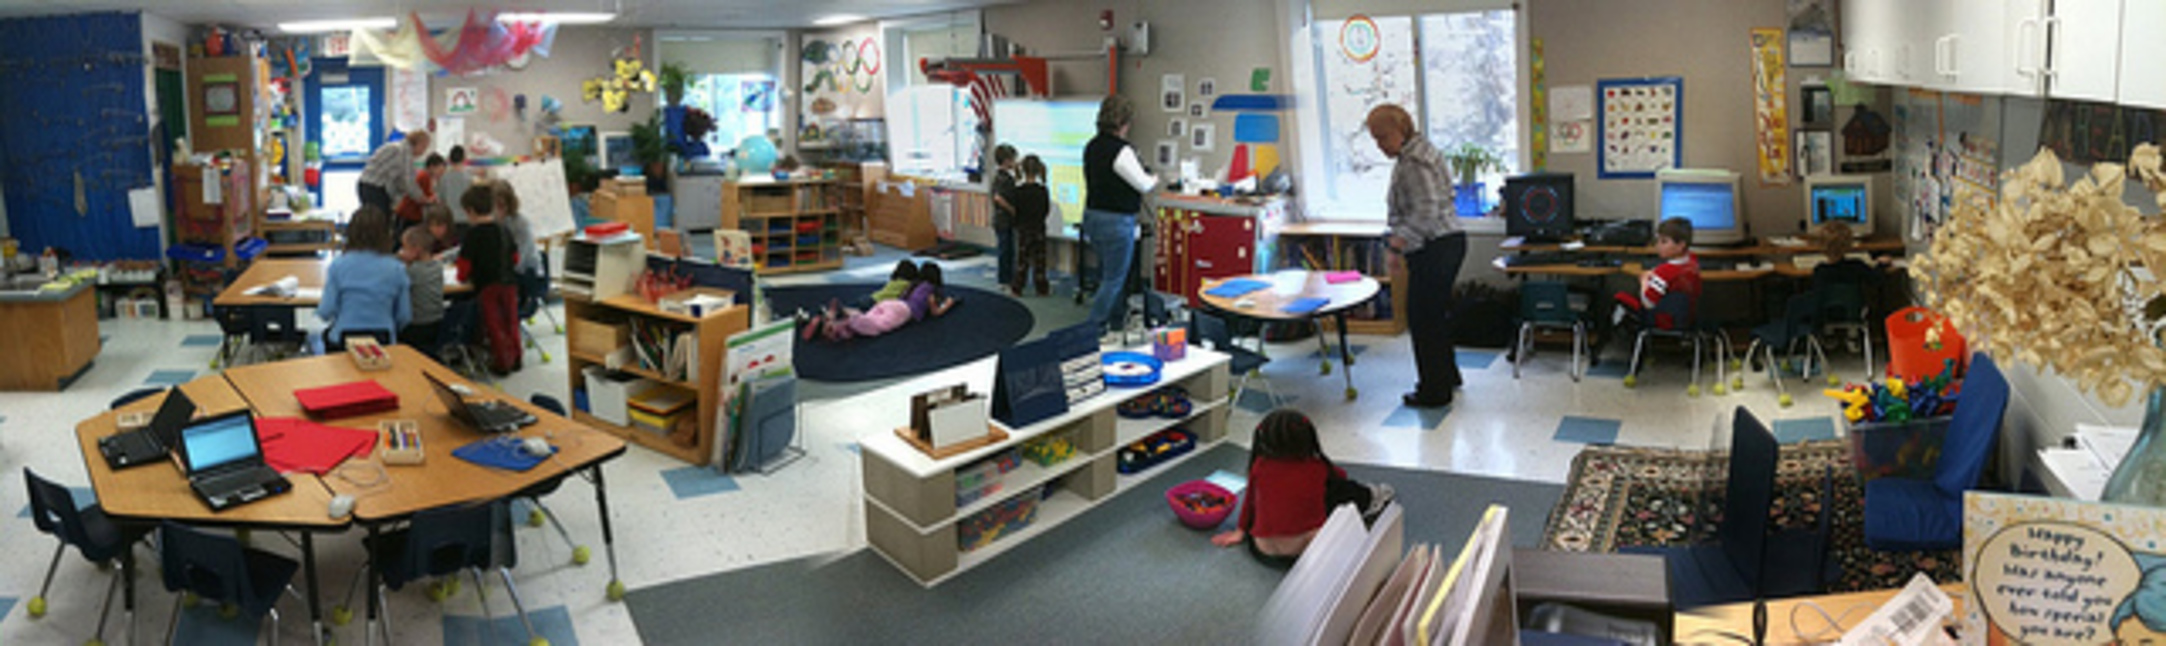 Classroom Design For Blind Students ~ Students struggle to hear teacher in new fad open plan